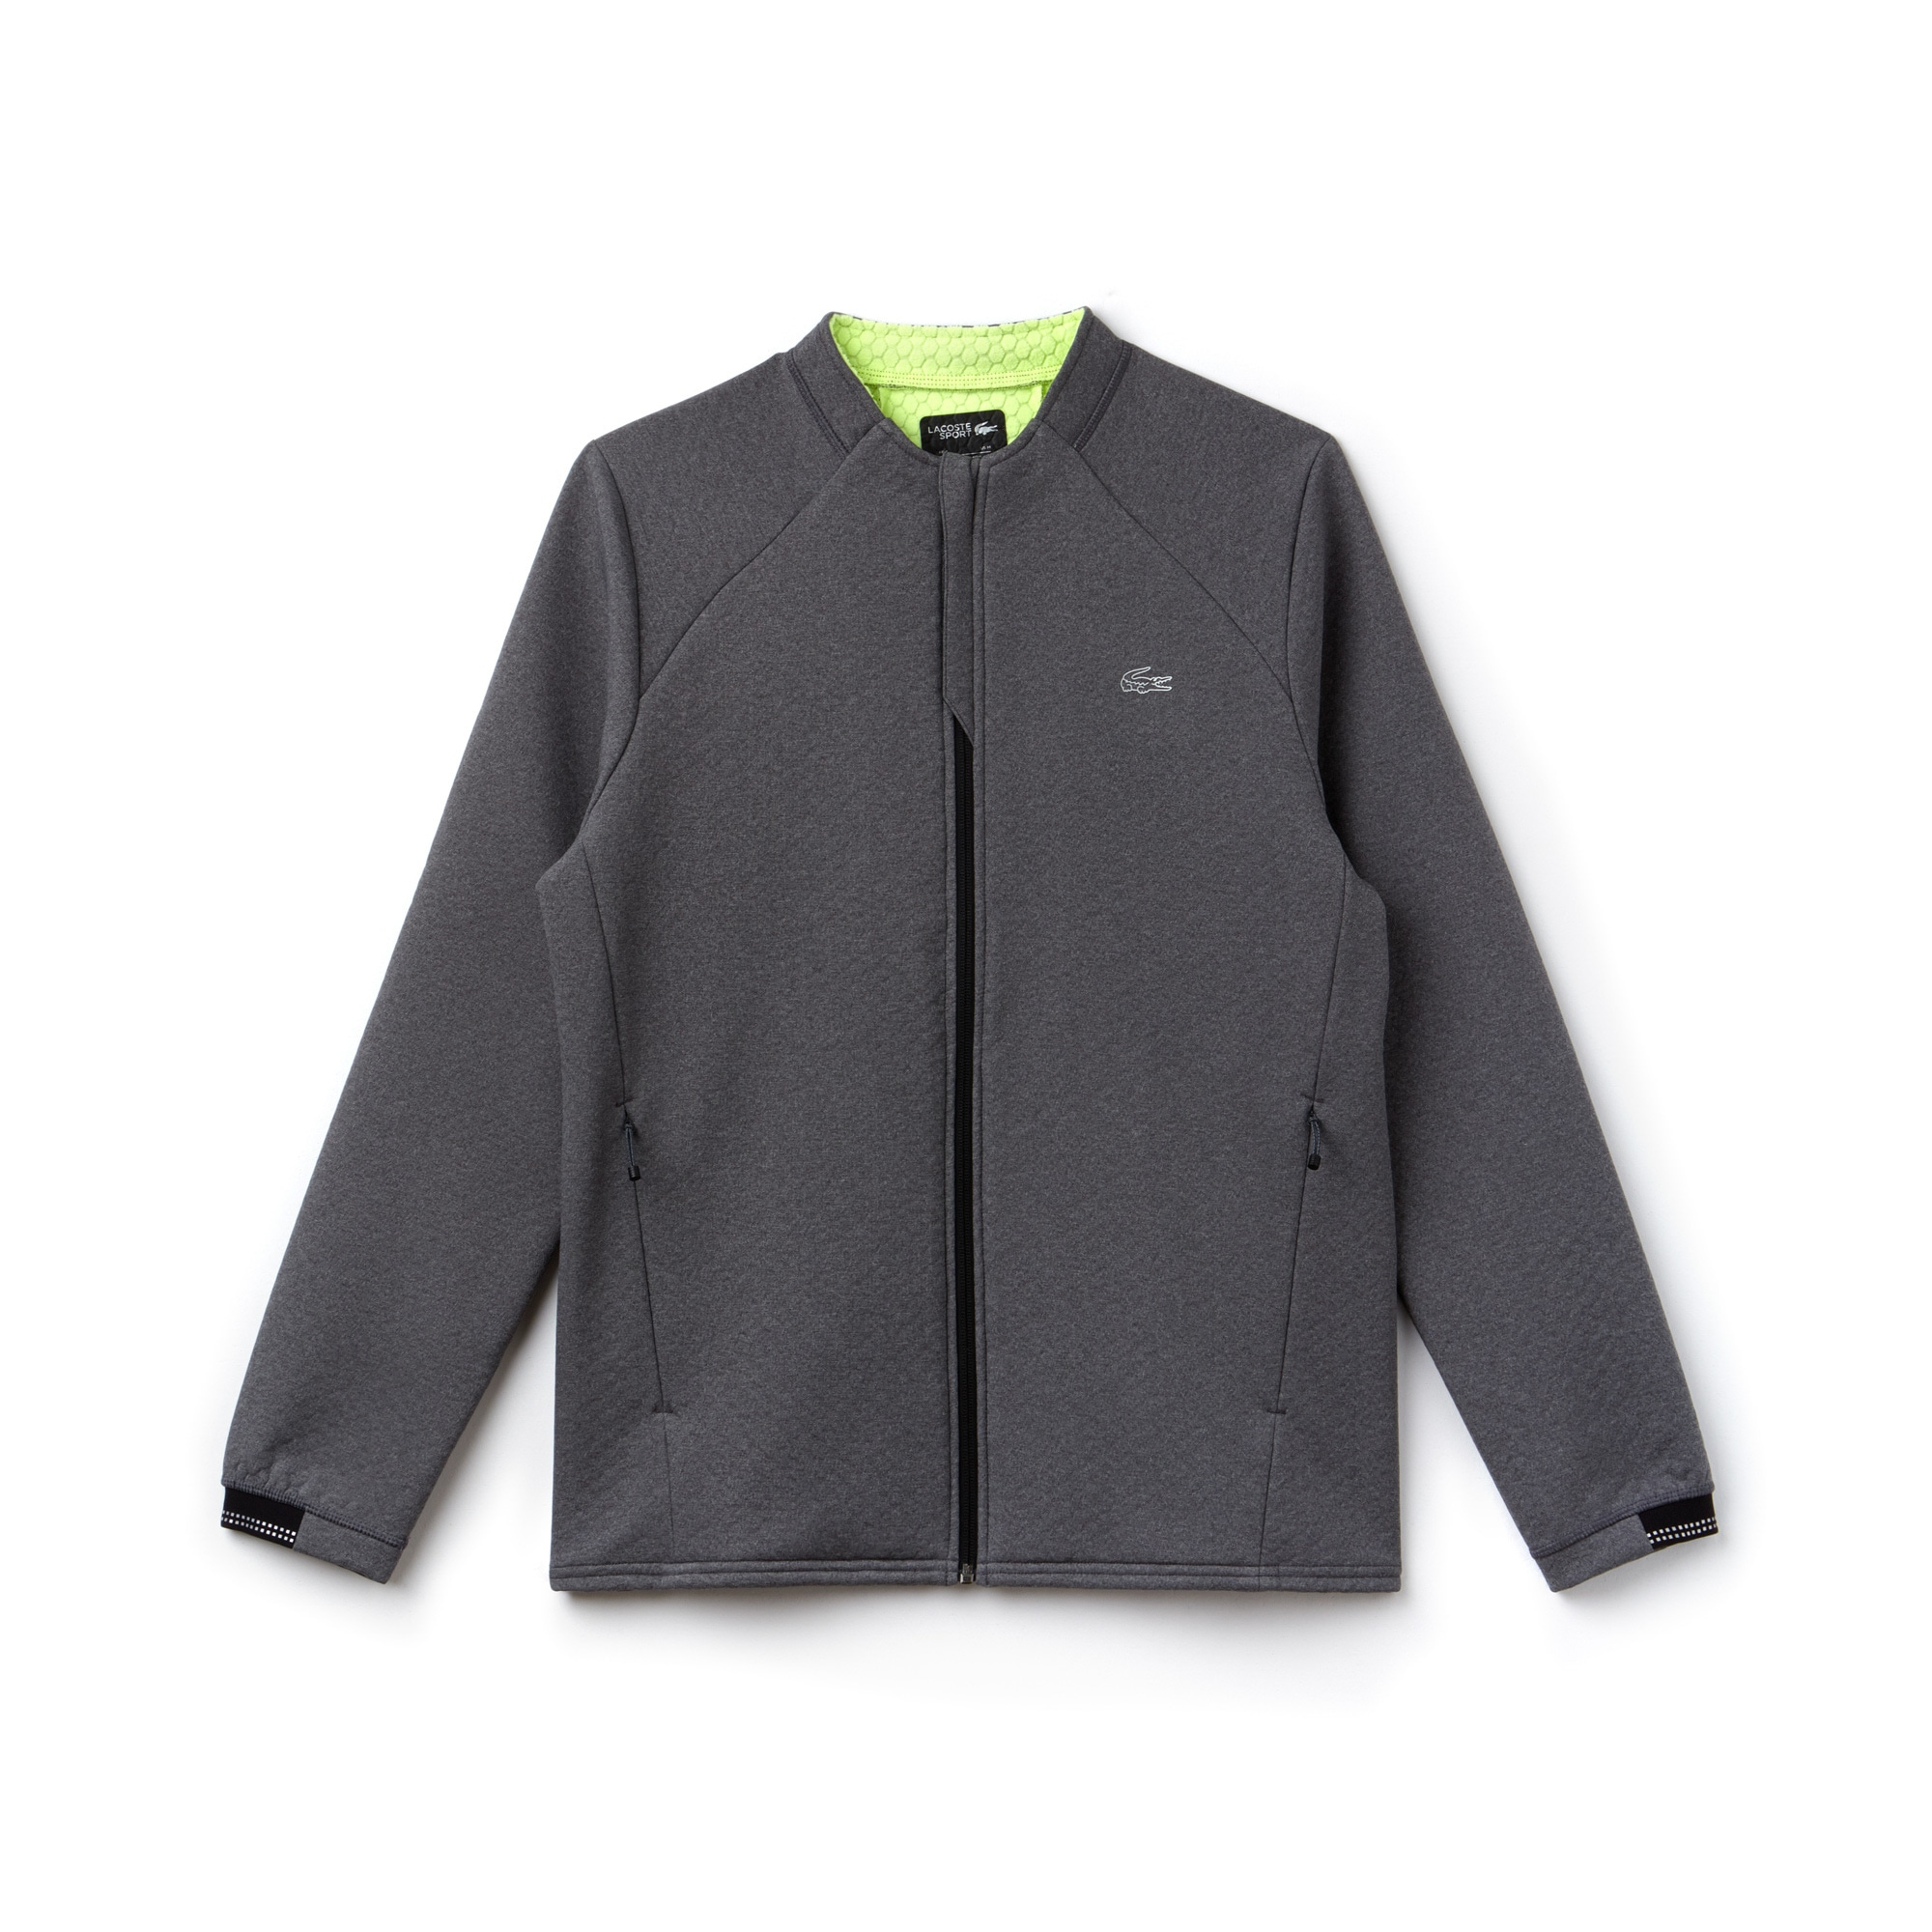 Men's Lacoste SPORT Fleece Midlayer Zip Tennis Sweatshirt